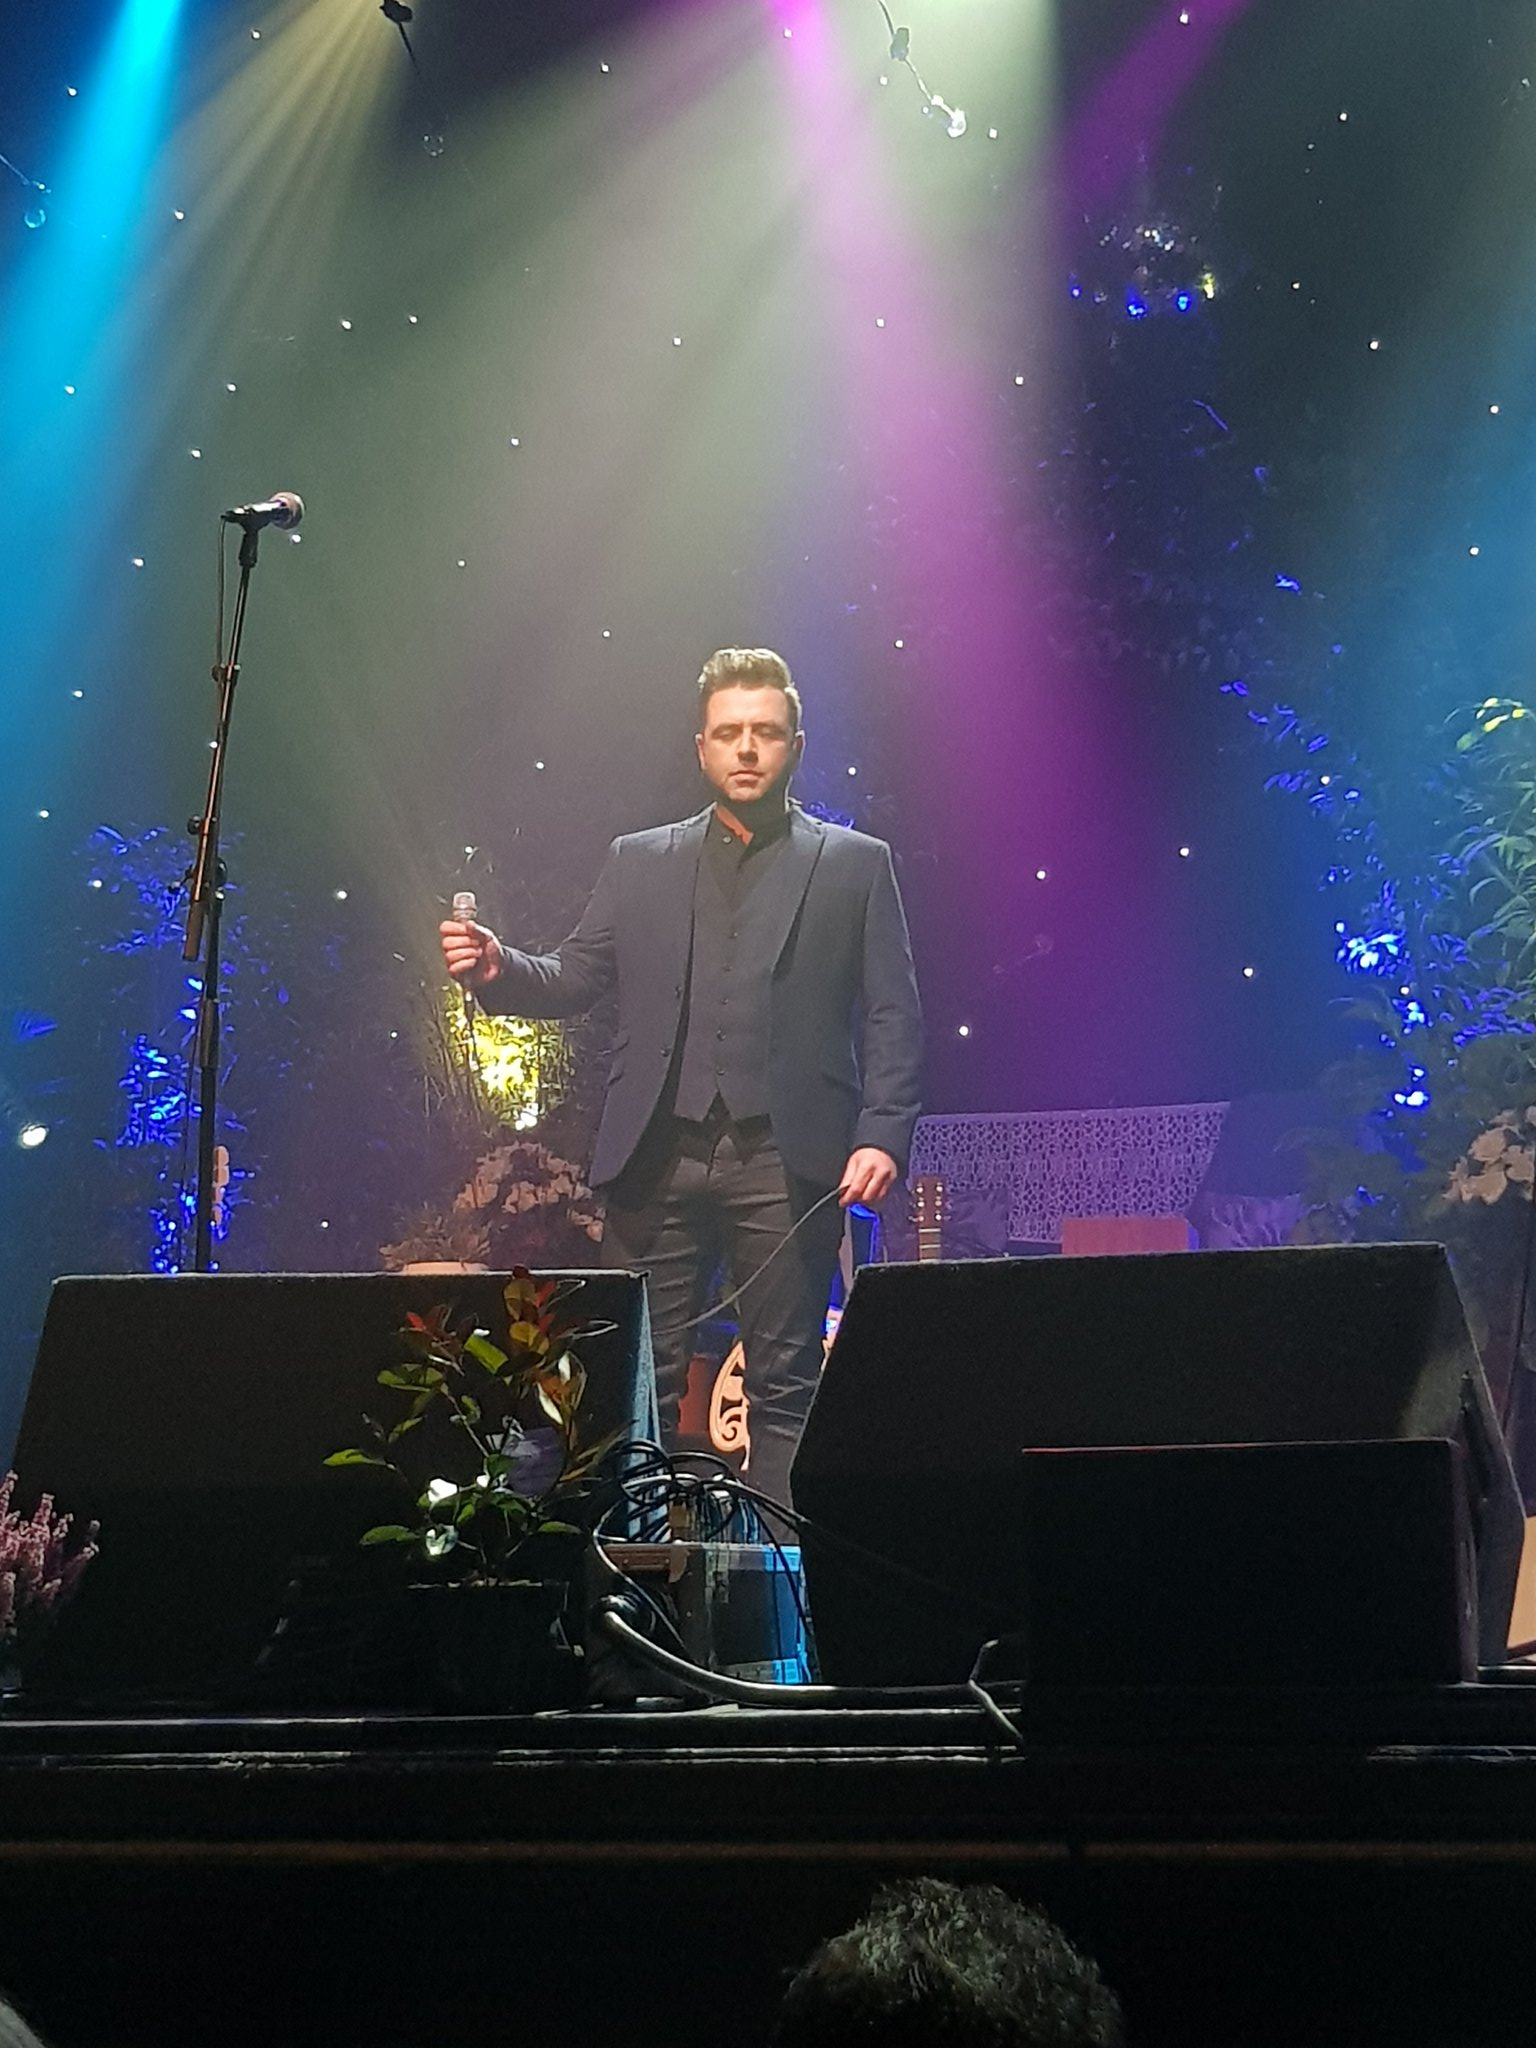 RT @MFeehilyMusic: Thank you so much for this! 🌟❤️😊 RT @beanie1503: @MarkusFeehily @russellcrowe @IGPmusic  https://t.co/iHMZNCAdDo